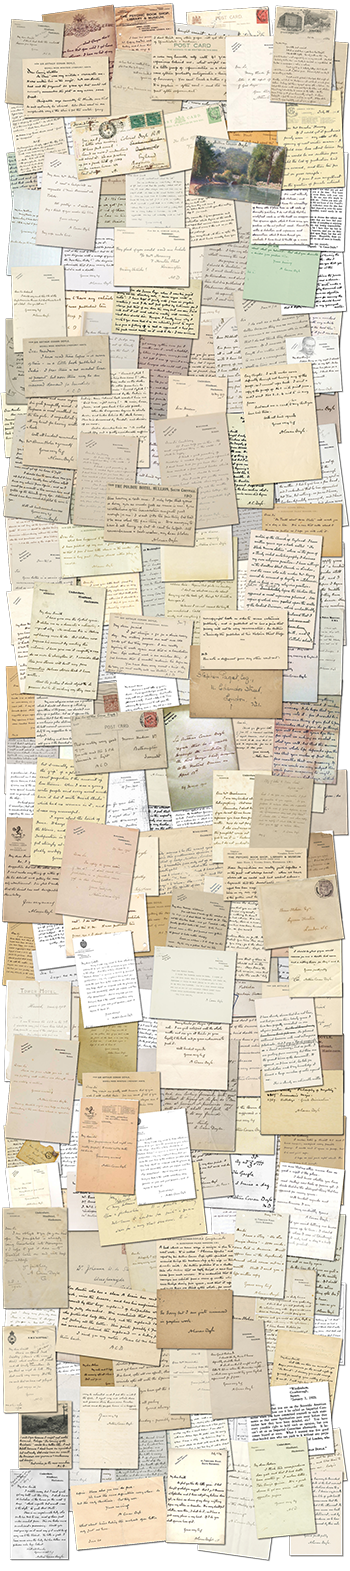 Sir Arthur Conan Doyle:Letters - The Arthur Conan Doyle Encyclopedia